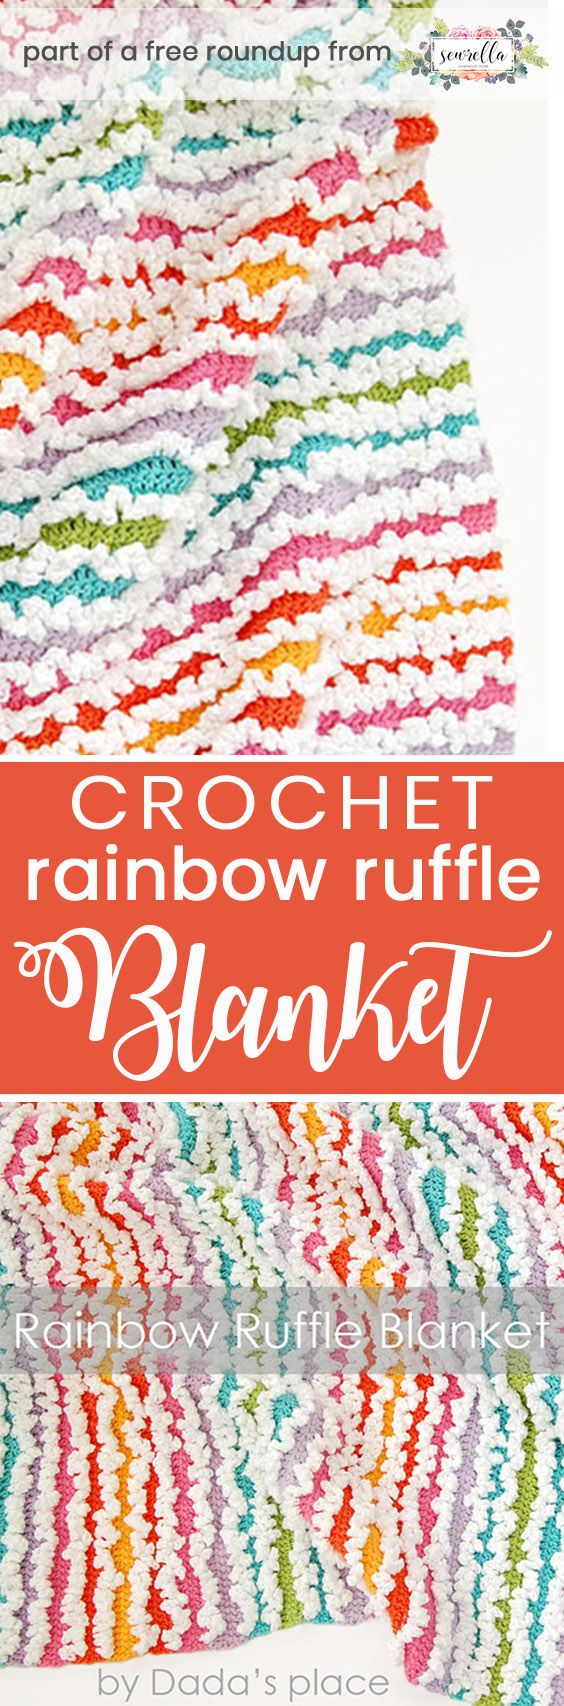 385 best crochet baby and kids blankets free images on crochet rainbow baby free pattern roundup bankloansurffo Image collections